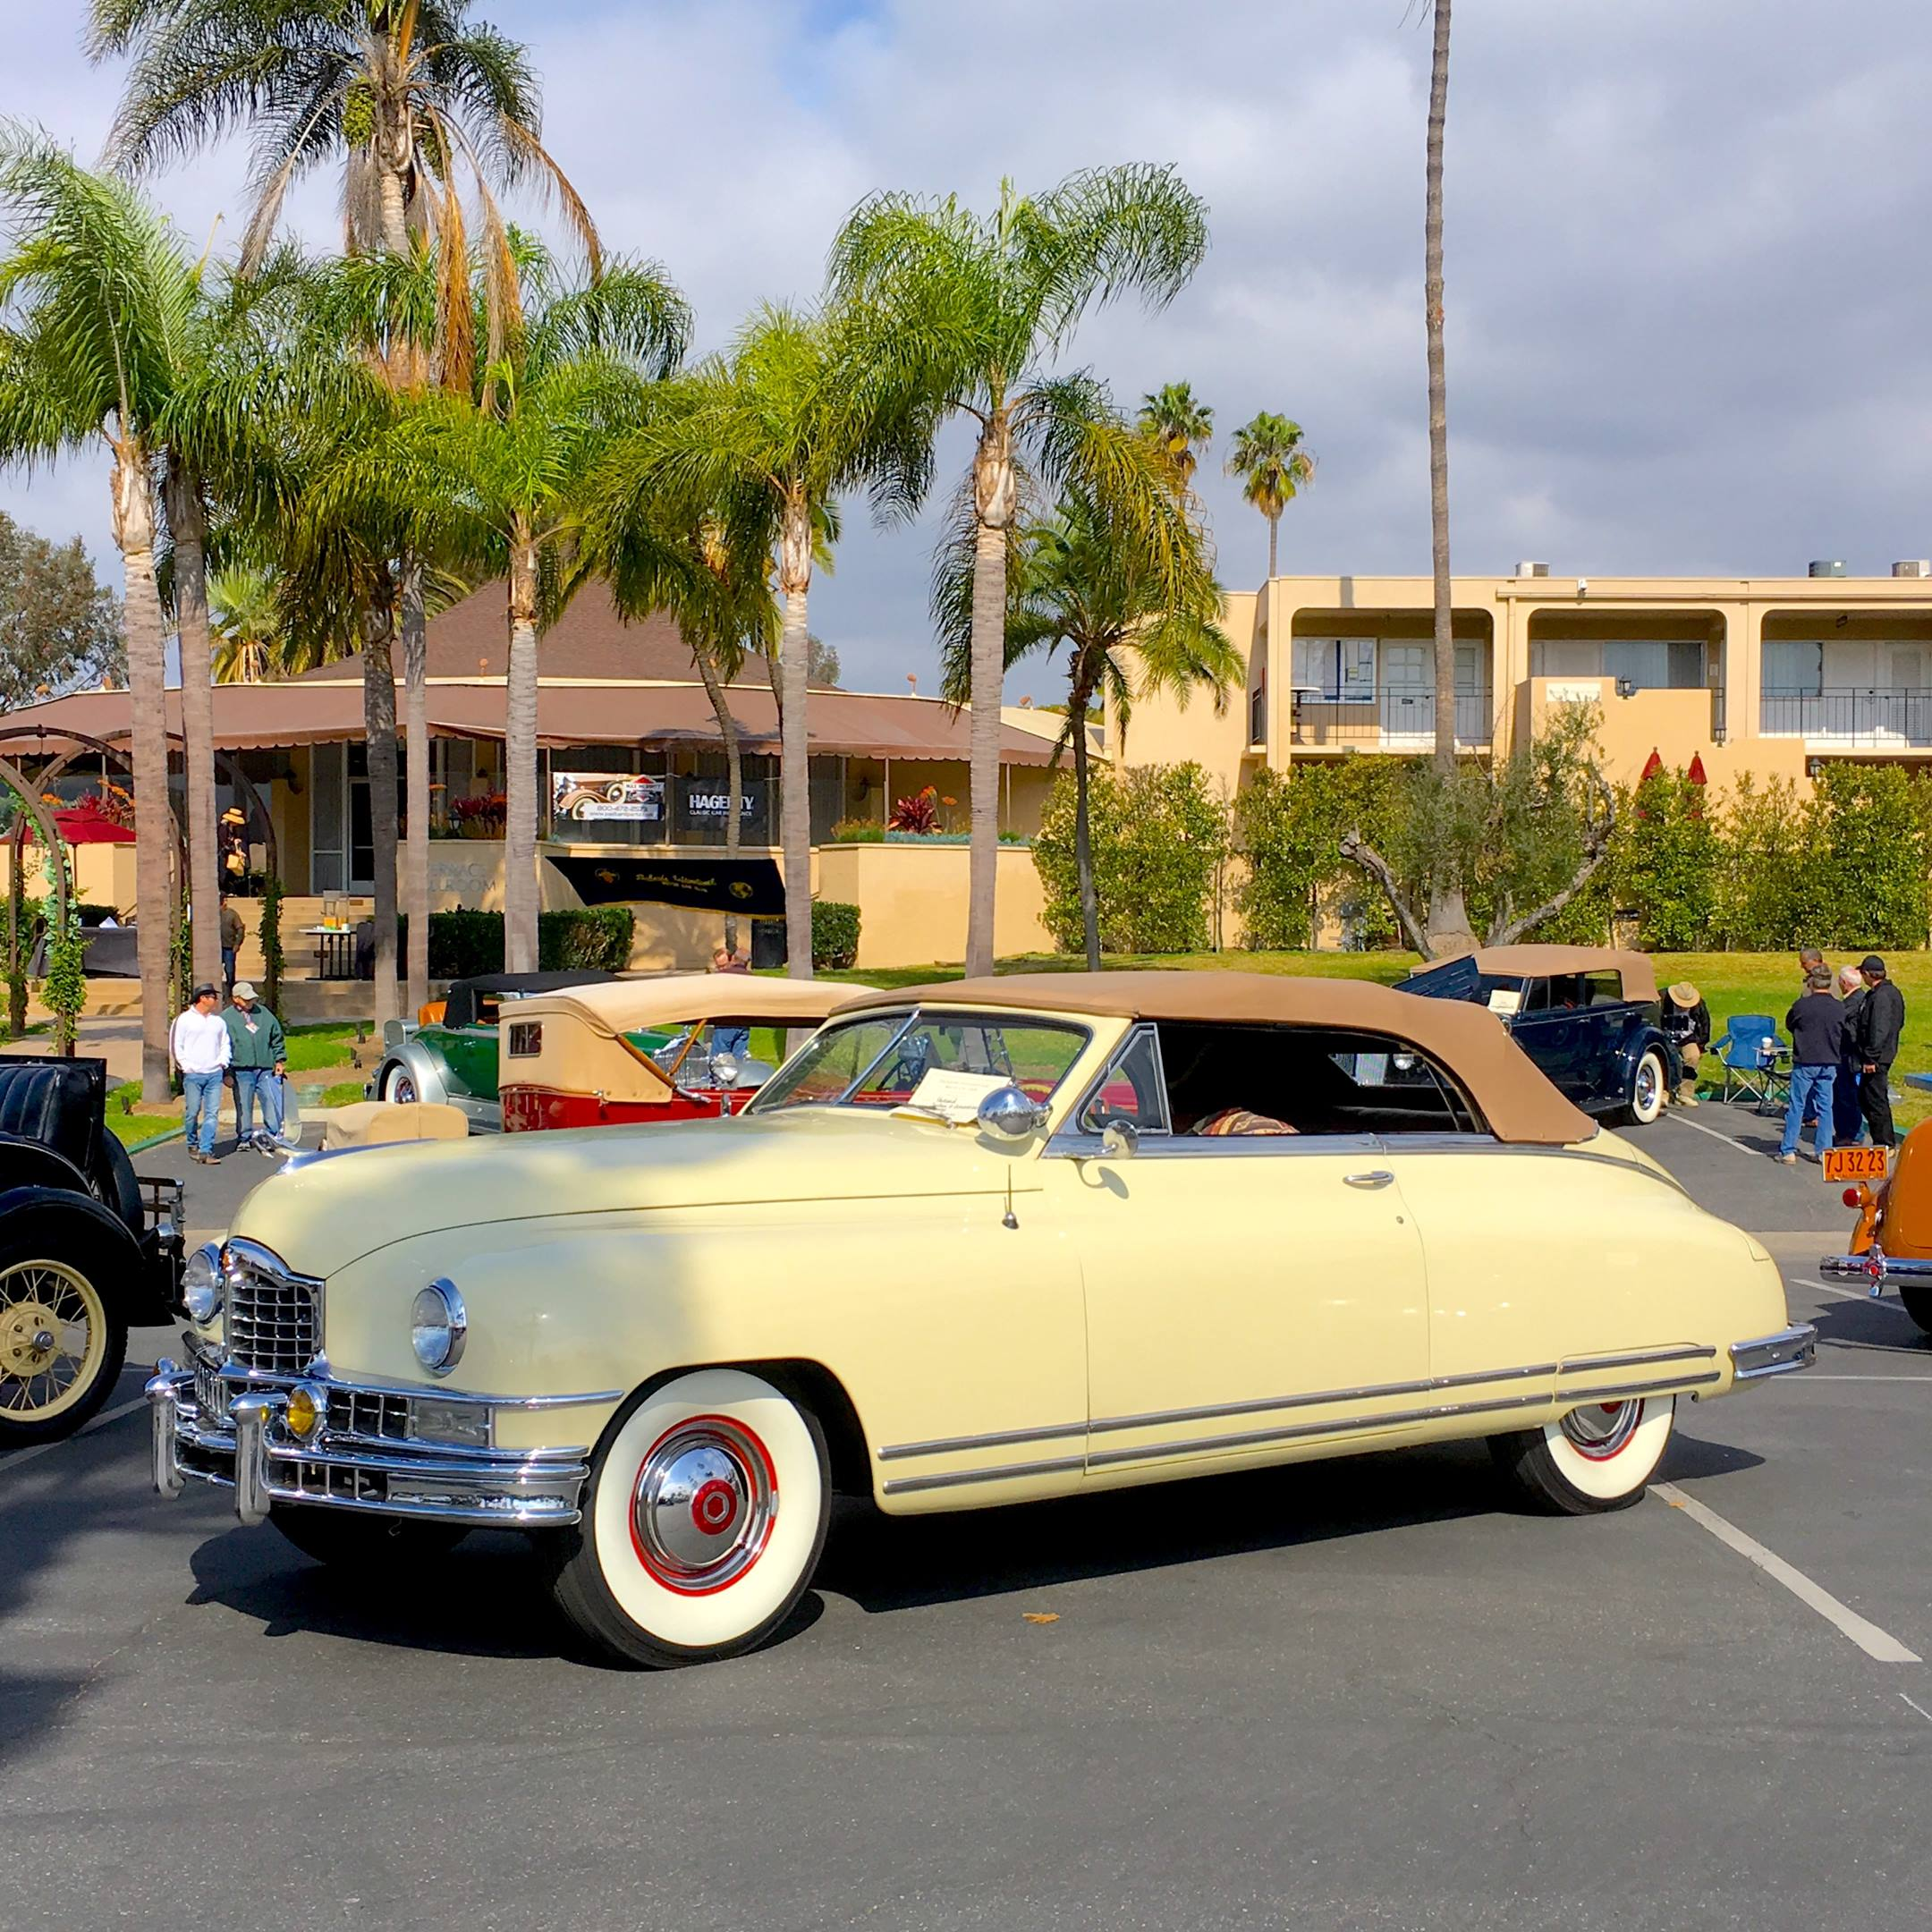 1948 Packard convertible left hand side view